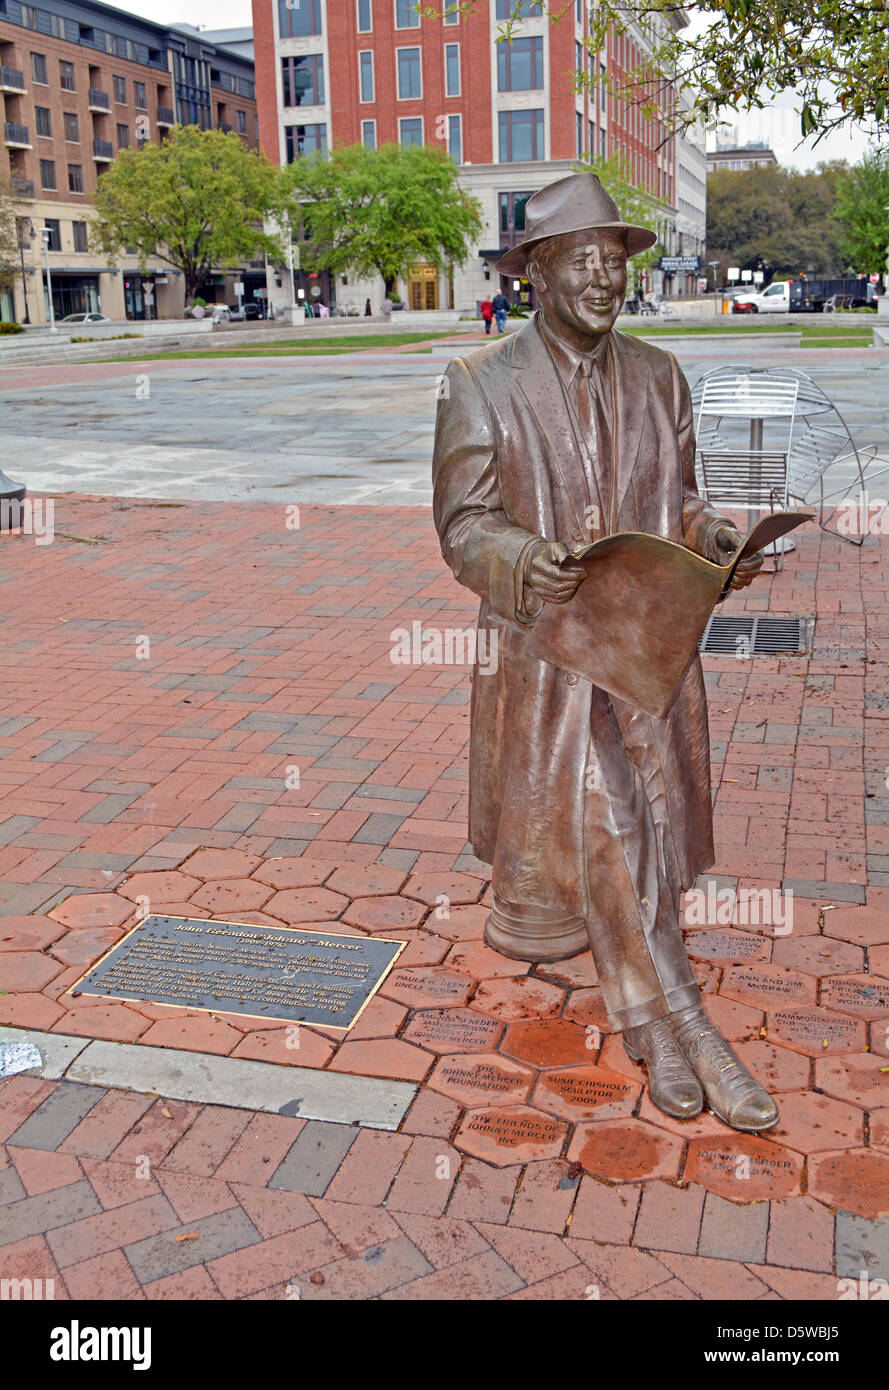 A life-size statue of lyricist singer Johnny Mercer in Ellis Square, Savannah, Georgia - Stock Image